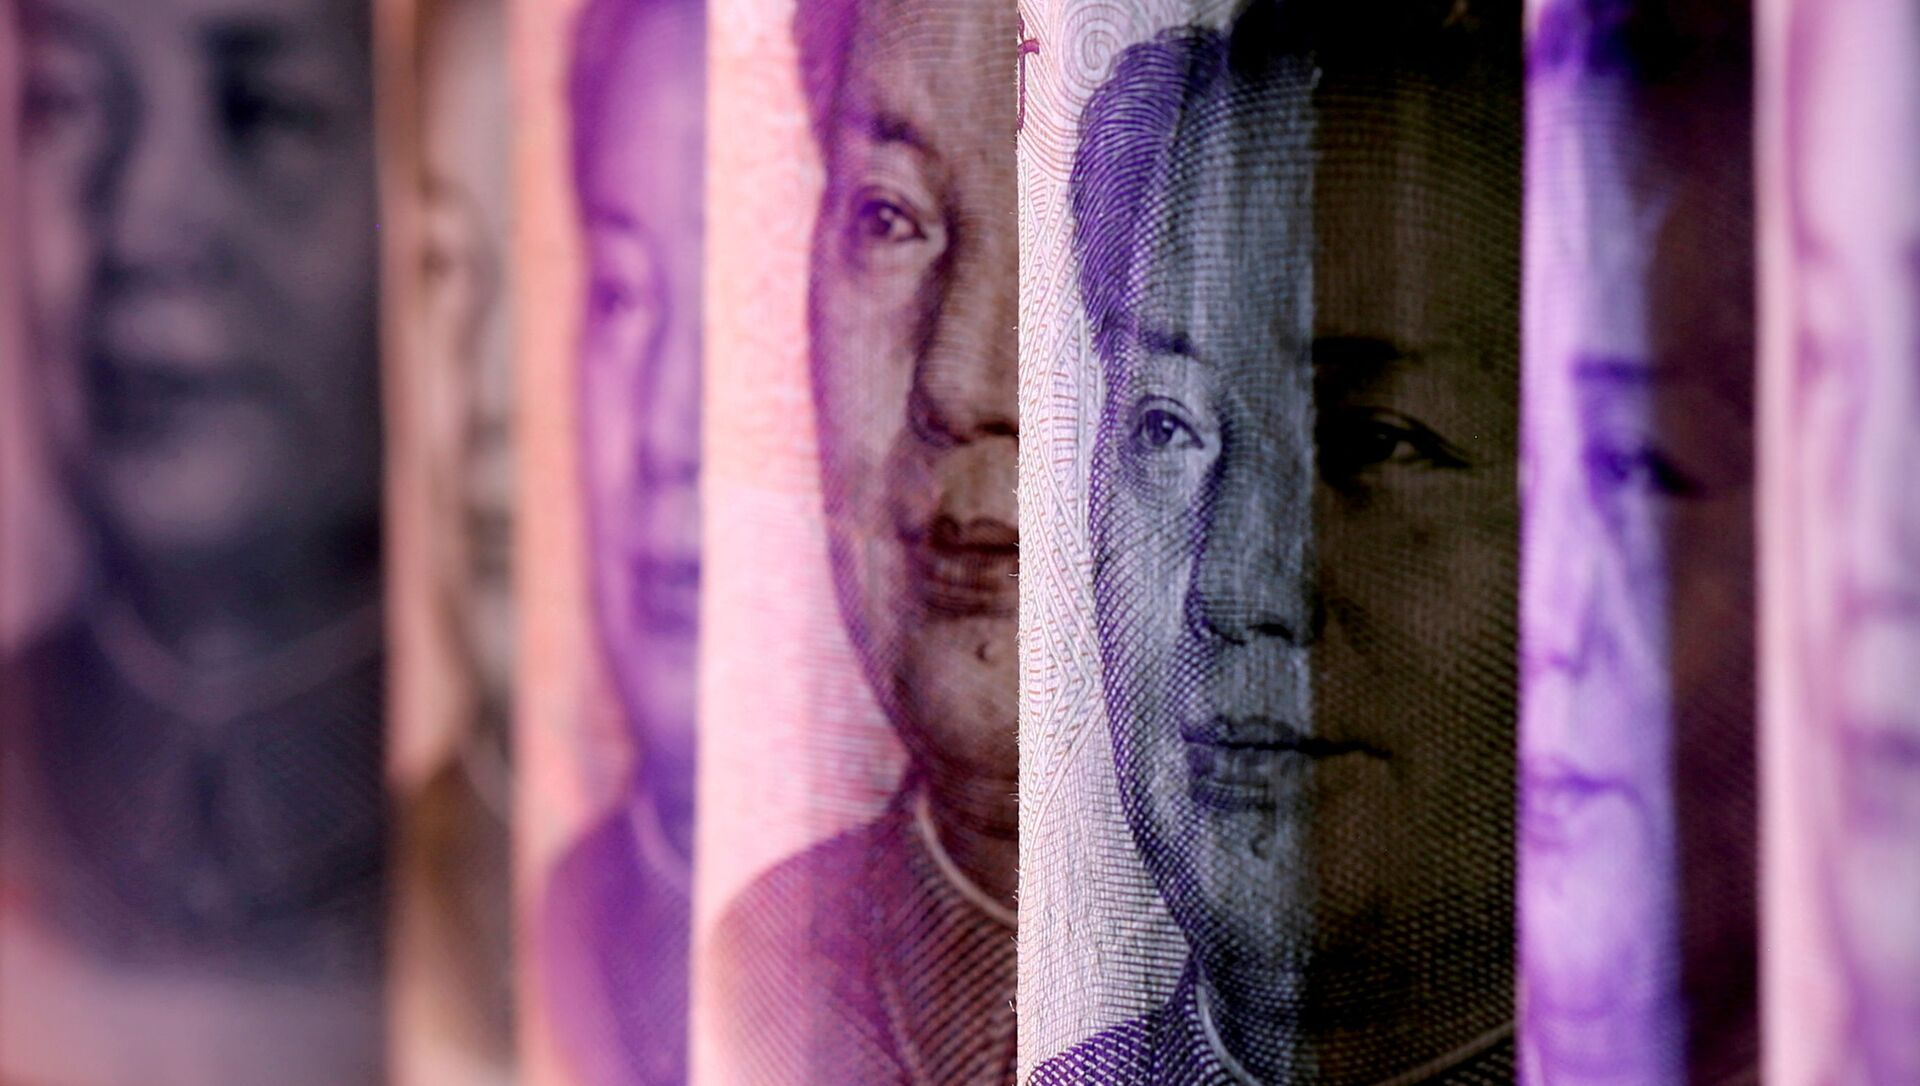 Chinese Yuan banknotes are seen in this illustration taken February 10, 2020. - Sputnik International, 1920, 26.07.2021